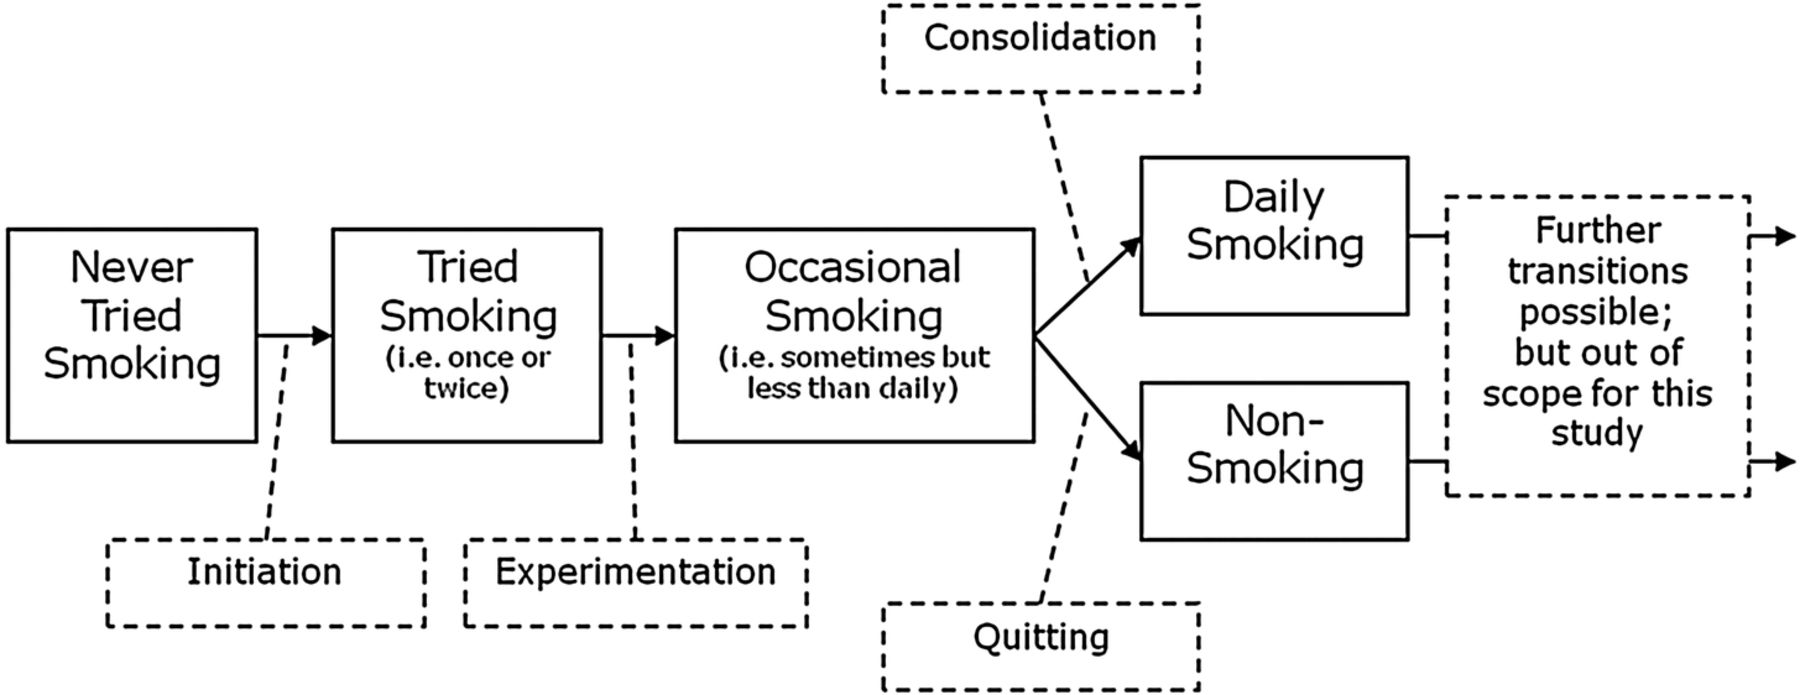 socioeconomic inequalities in adolescent smoking behaviour Socioeconomic inequalities in adolescent health 2002–2010: a time-series analysis of 34 countries participating in the health behaviour in school-aged children study.